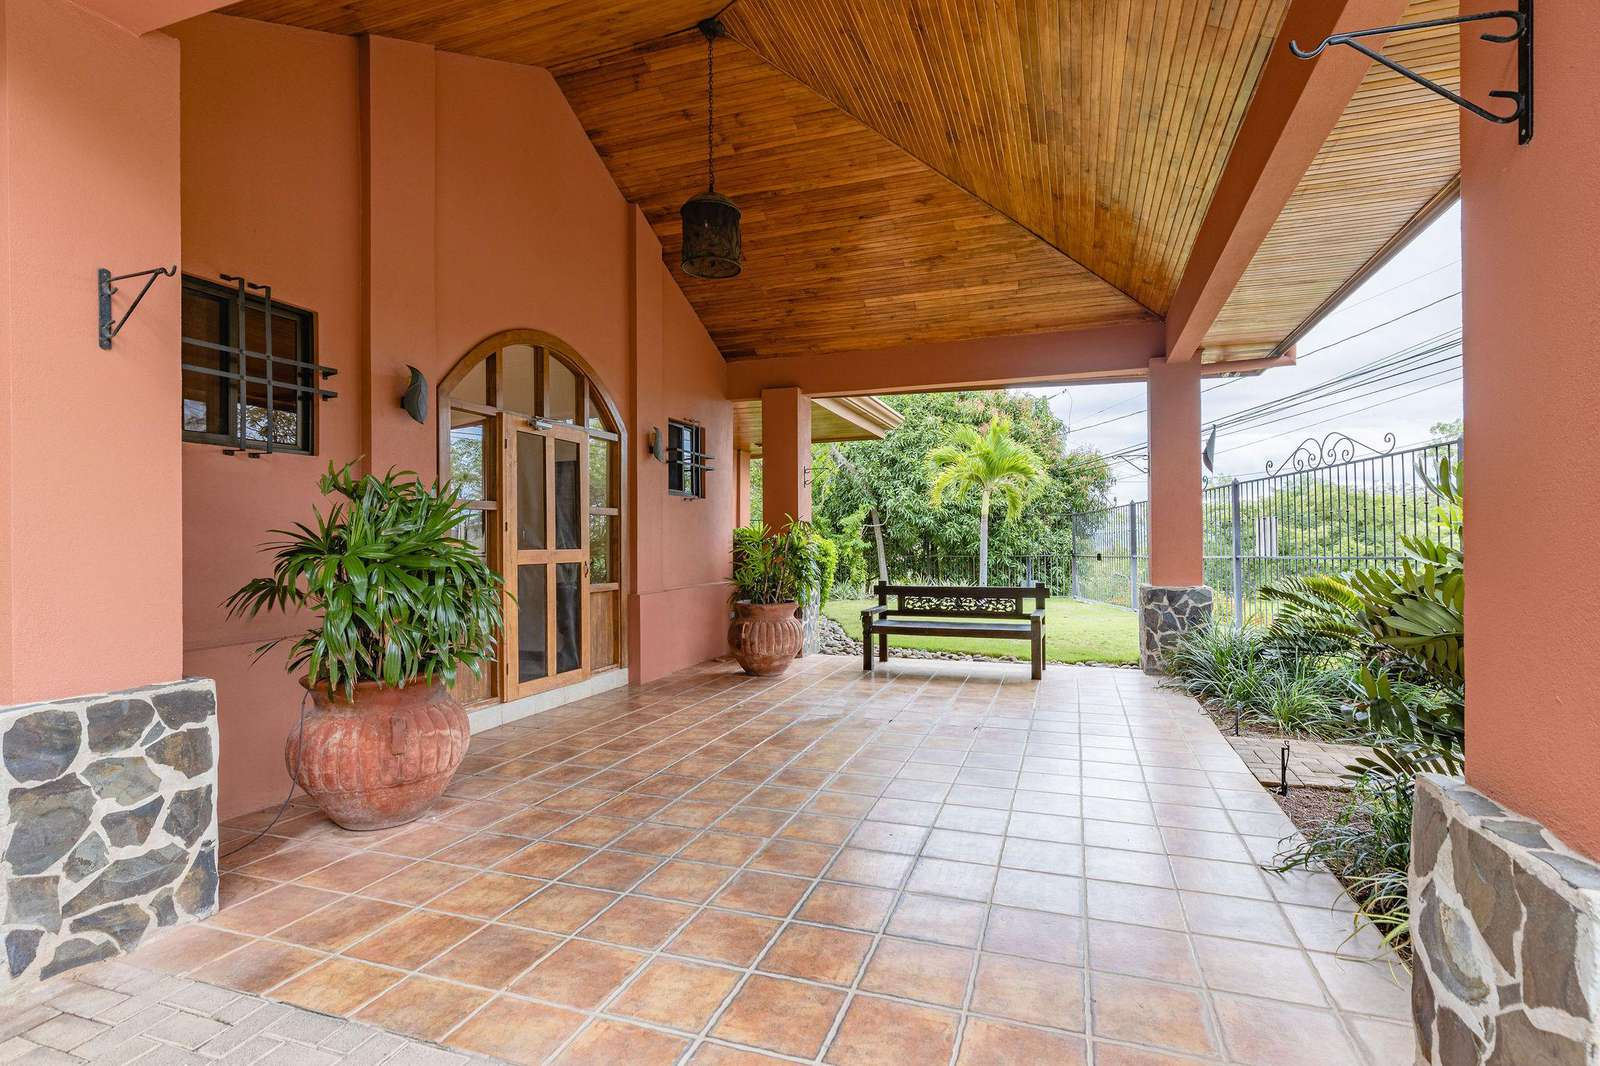 Carport area, main entrance of Casa Rosa